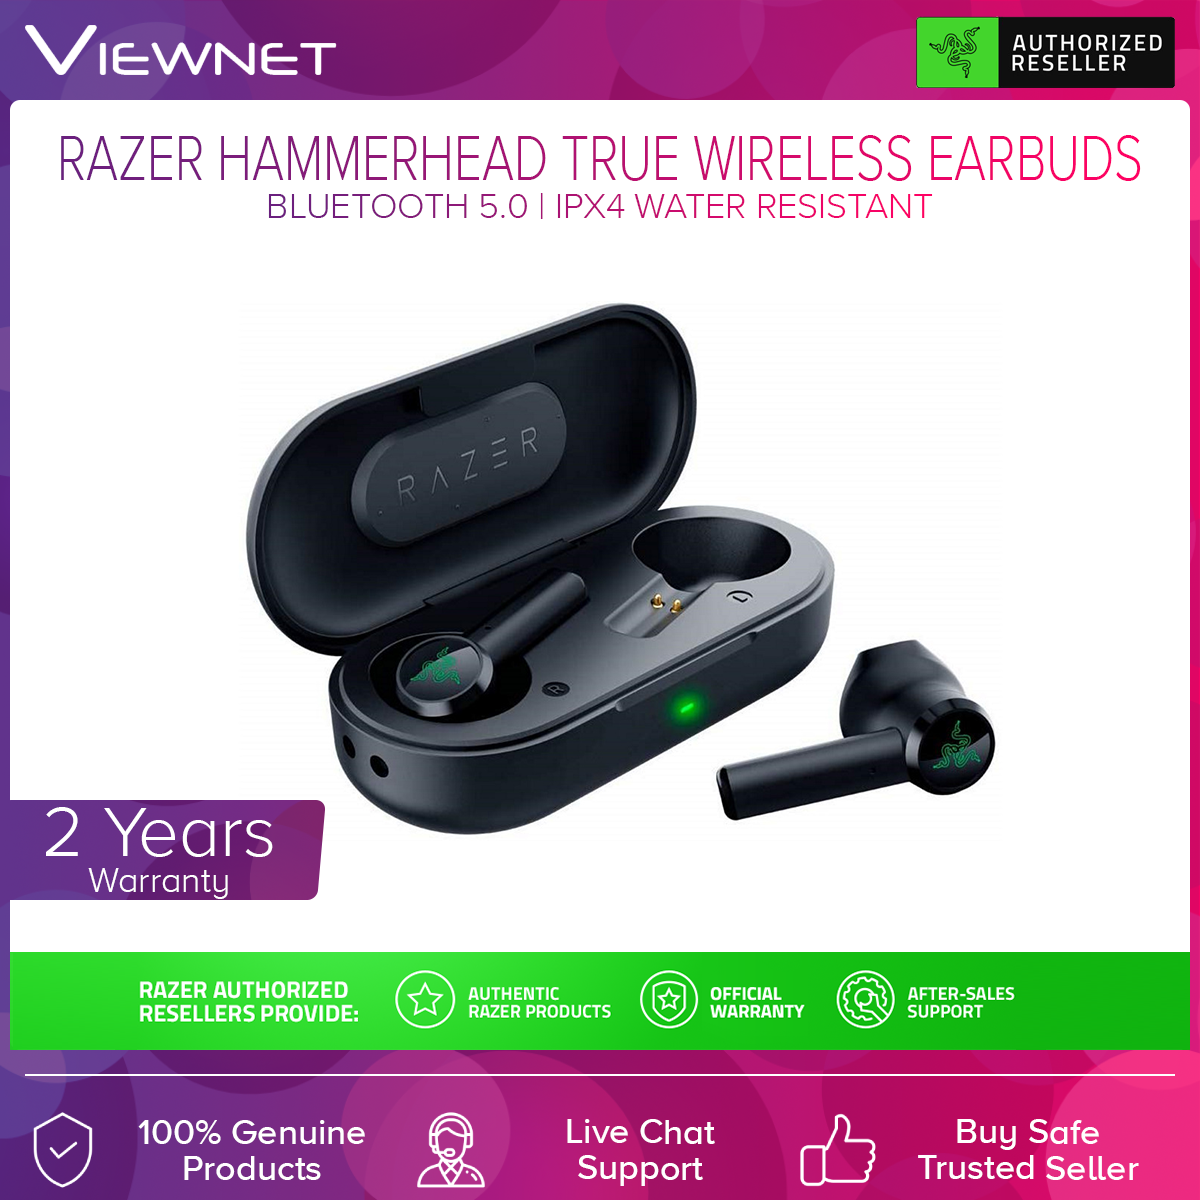 Razer Hammerhead True Wireless Earbuds (RZ12-02970100-R3A1), Ultra Low Tendency, Customer-Tuned 13MM Drivers, Bluetooth 5.0, Water Resistant Design, Portable Type C Charging Case, Sound Isolation Silicone Earbud Sleeves, Baterry life Earbuds 4 Hours